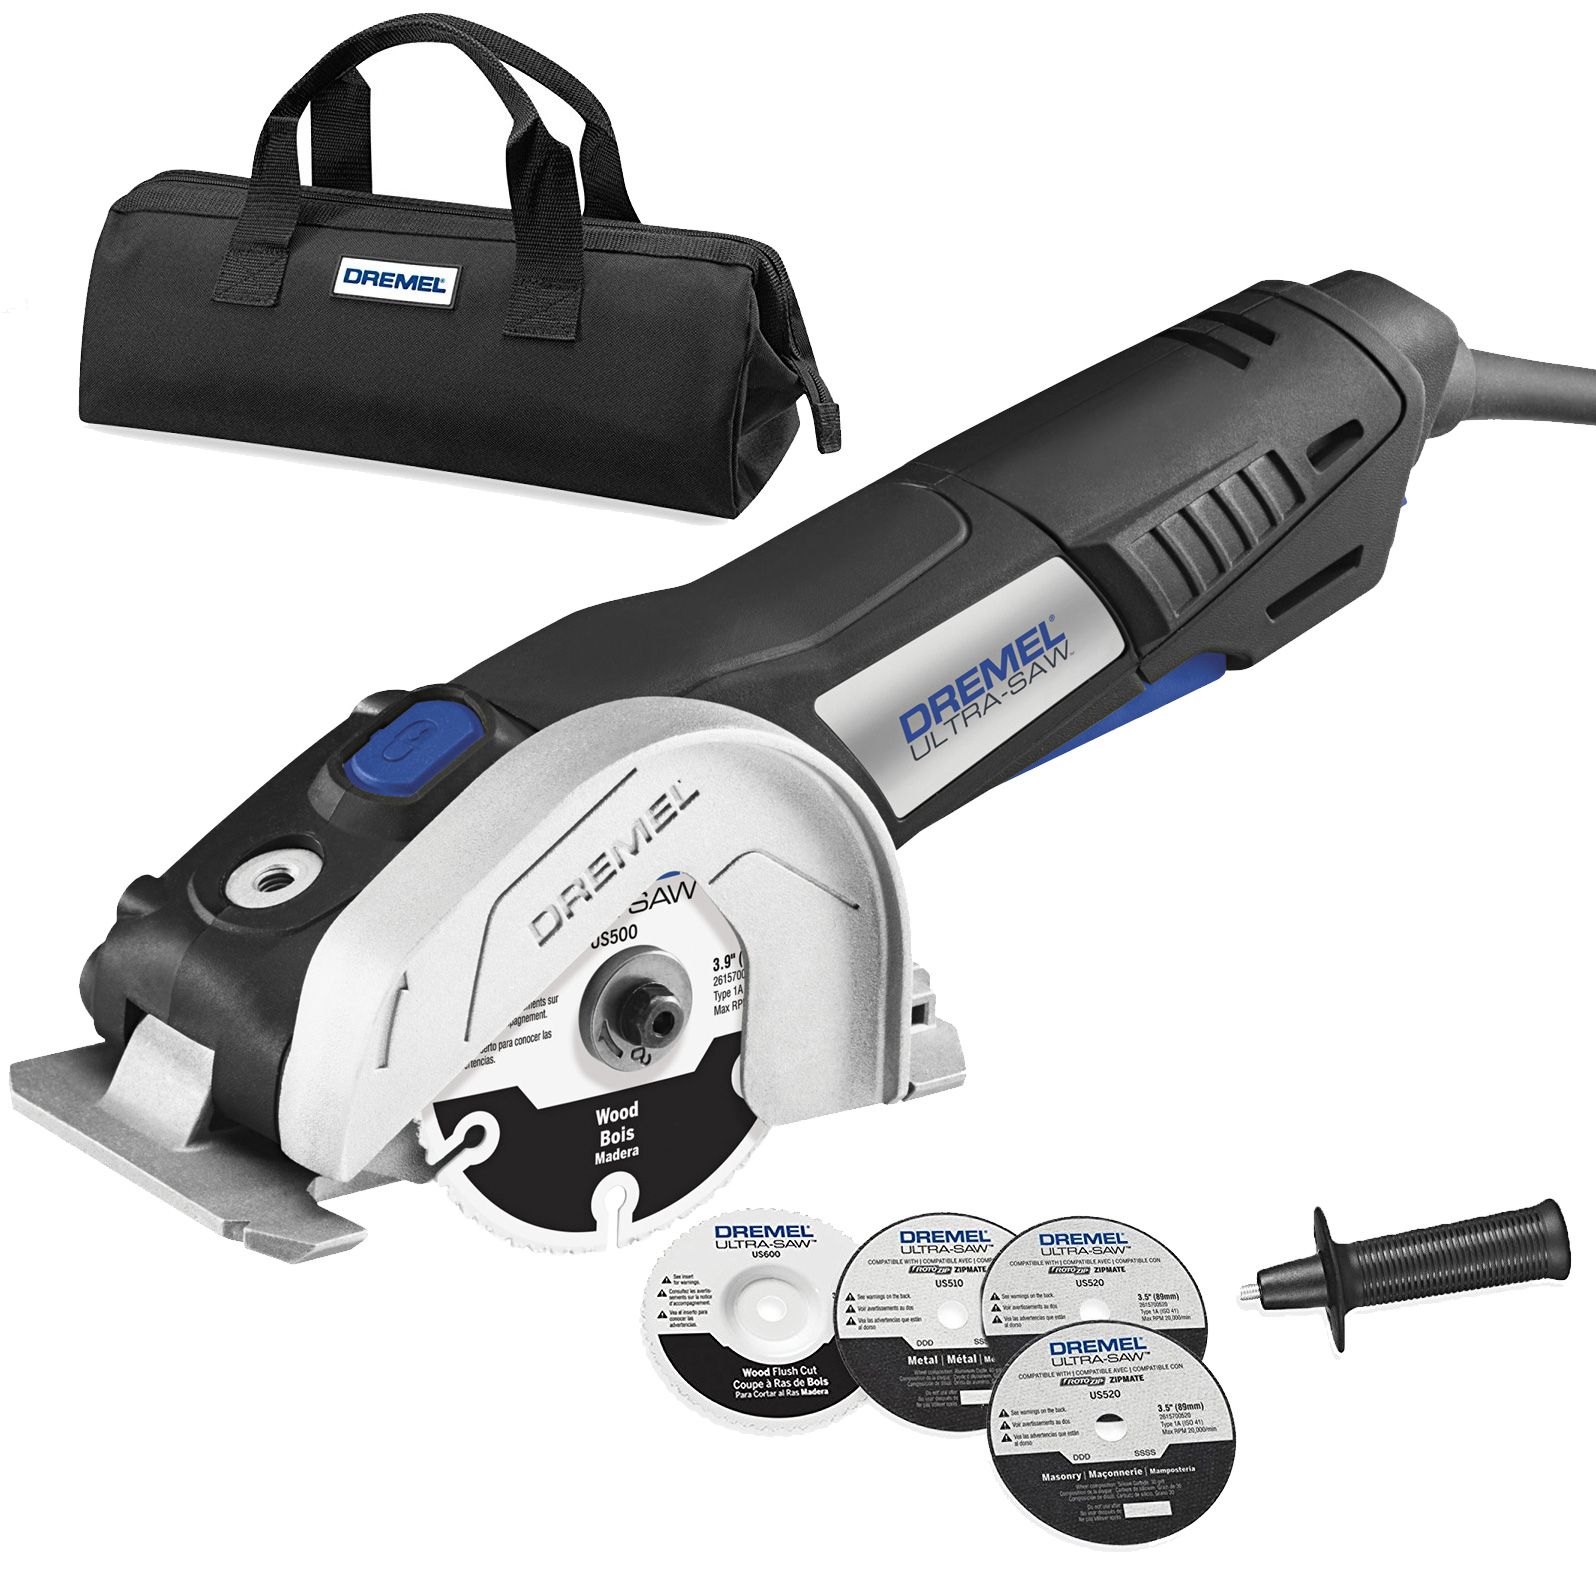 Dremel Us40-Dr 7.5 Amp Motor 4-Inch Ultra-Saw Tool Kit Reconditioned Mfr. Refurbished